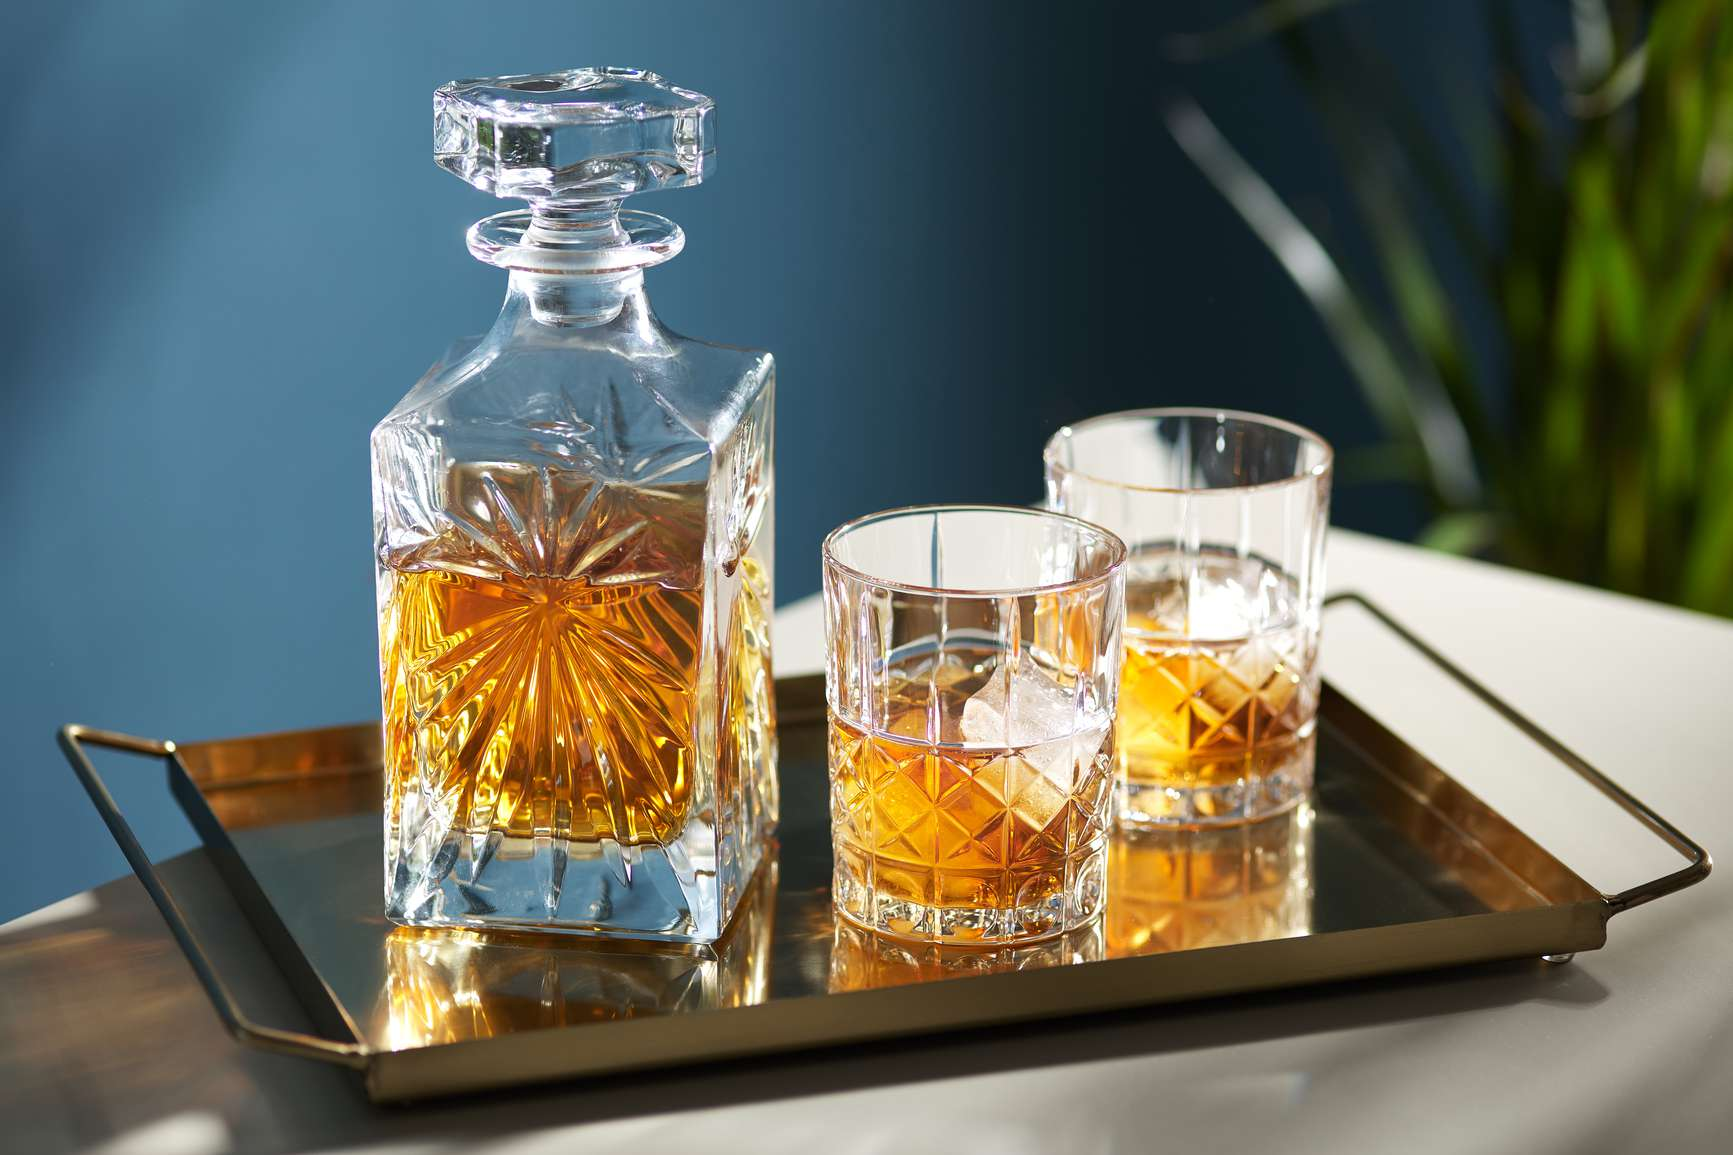 Crystal decanter of whiskey next to two glasses of whisky on a gold tray.